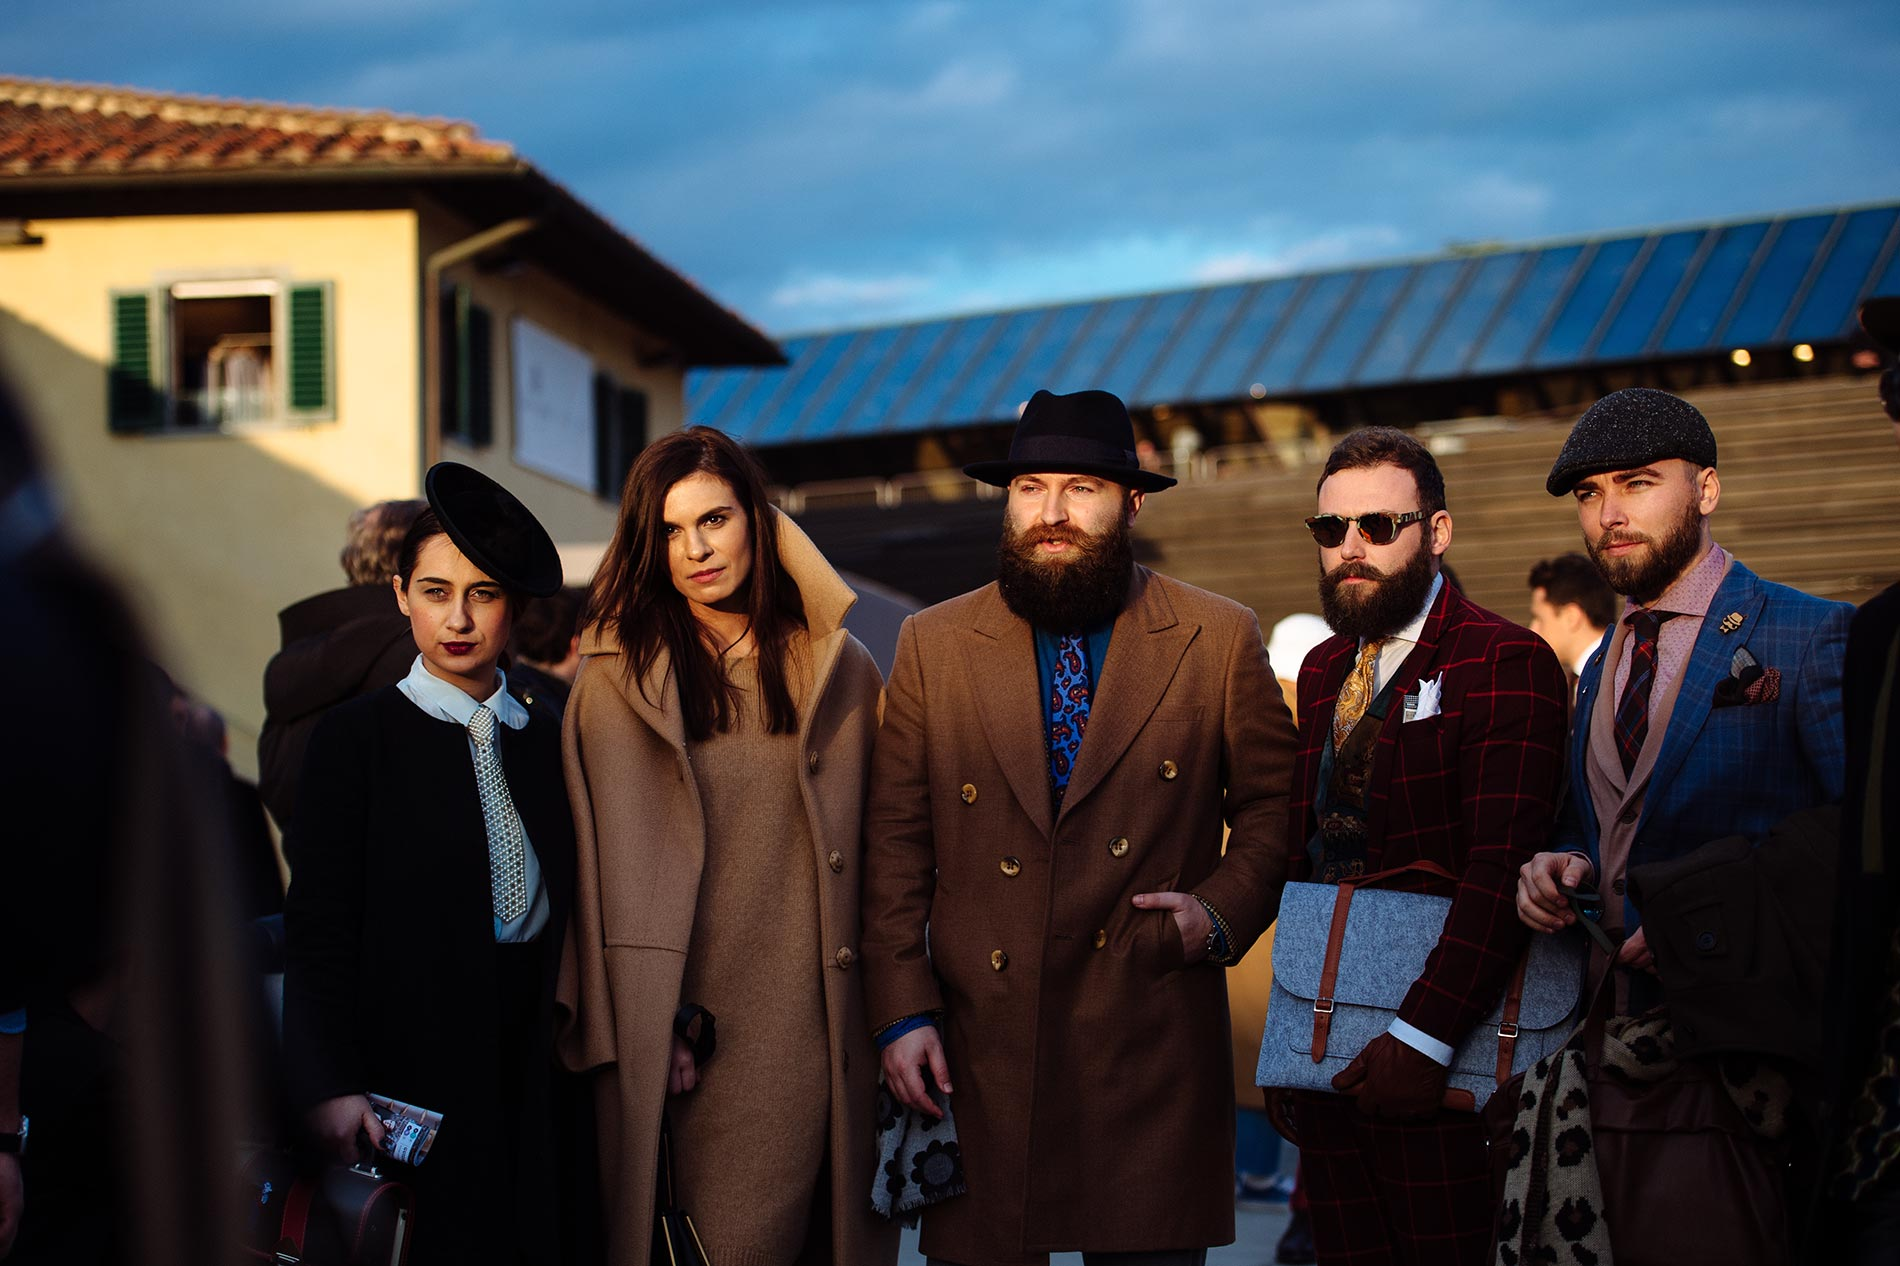 Pitti Uomo 87 - Florence, January 2015